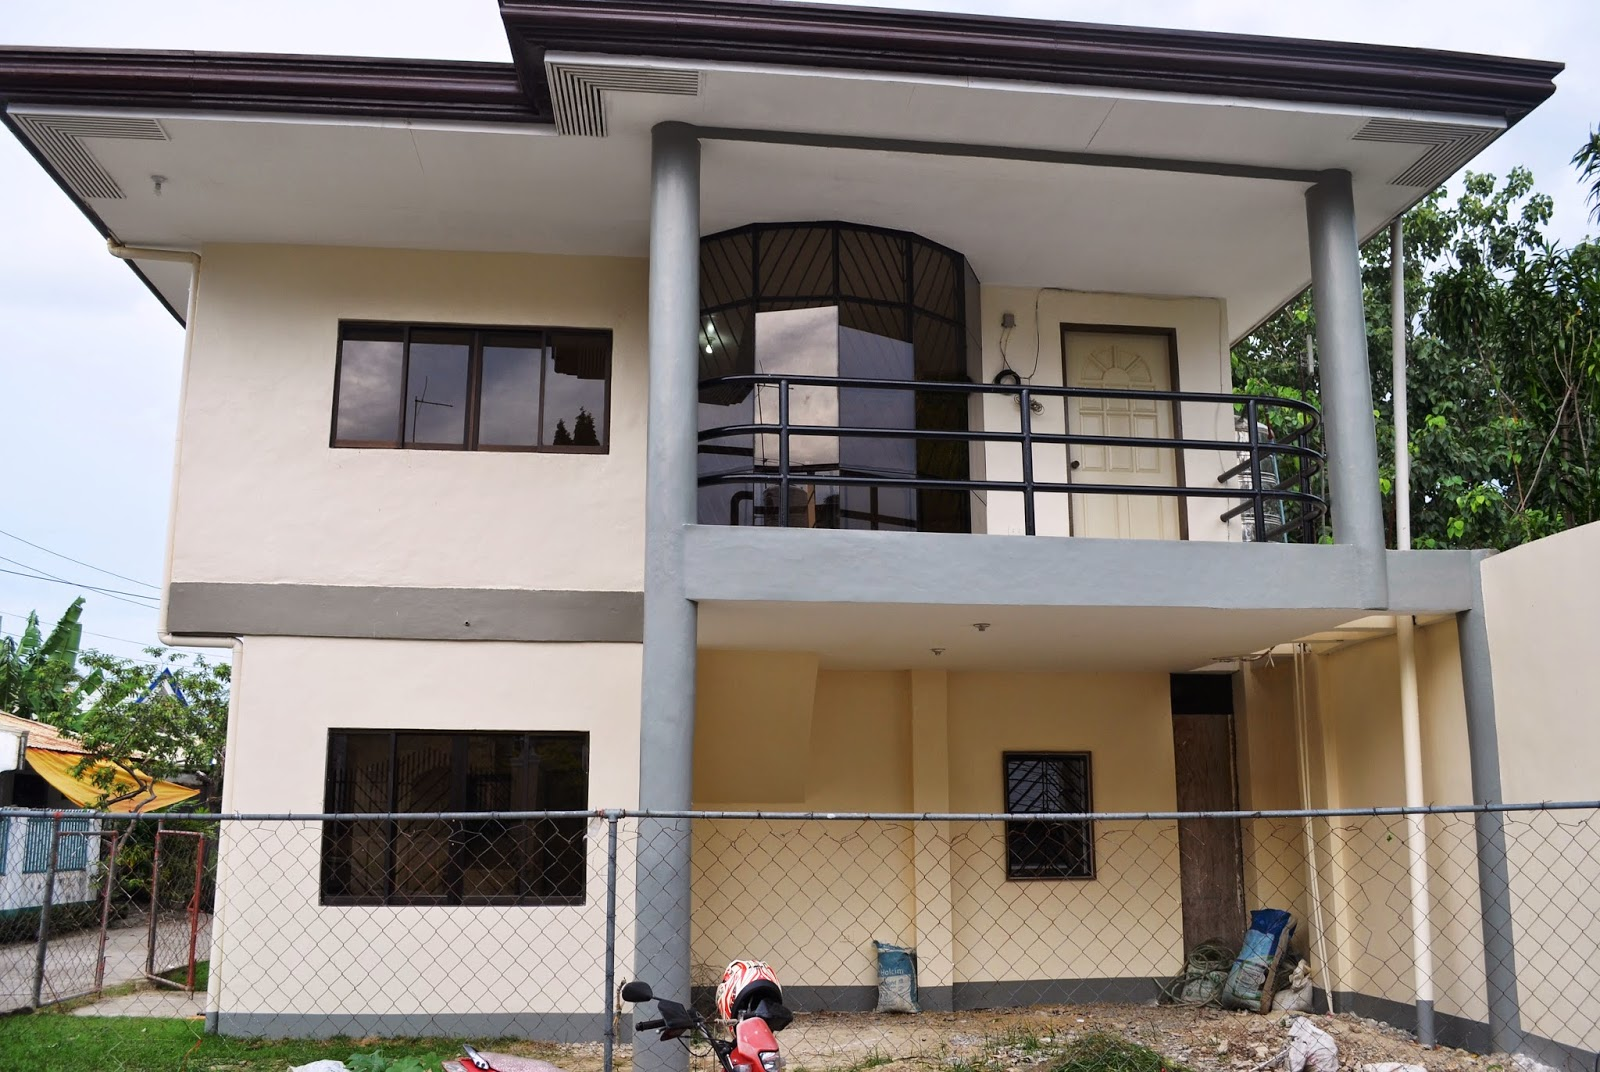 5 Bedrooms Homes For Rent Cebu City House Amp Lot For Sale Rush House For Sale In